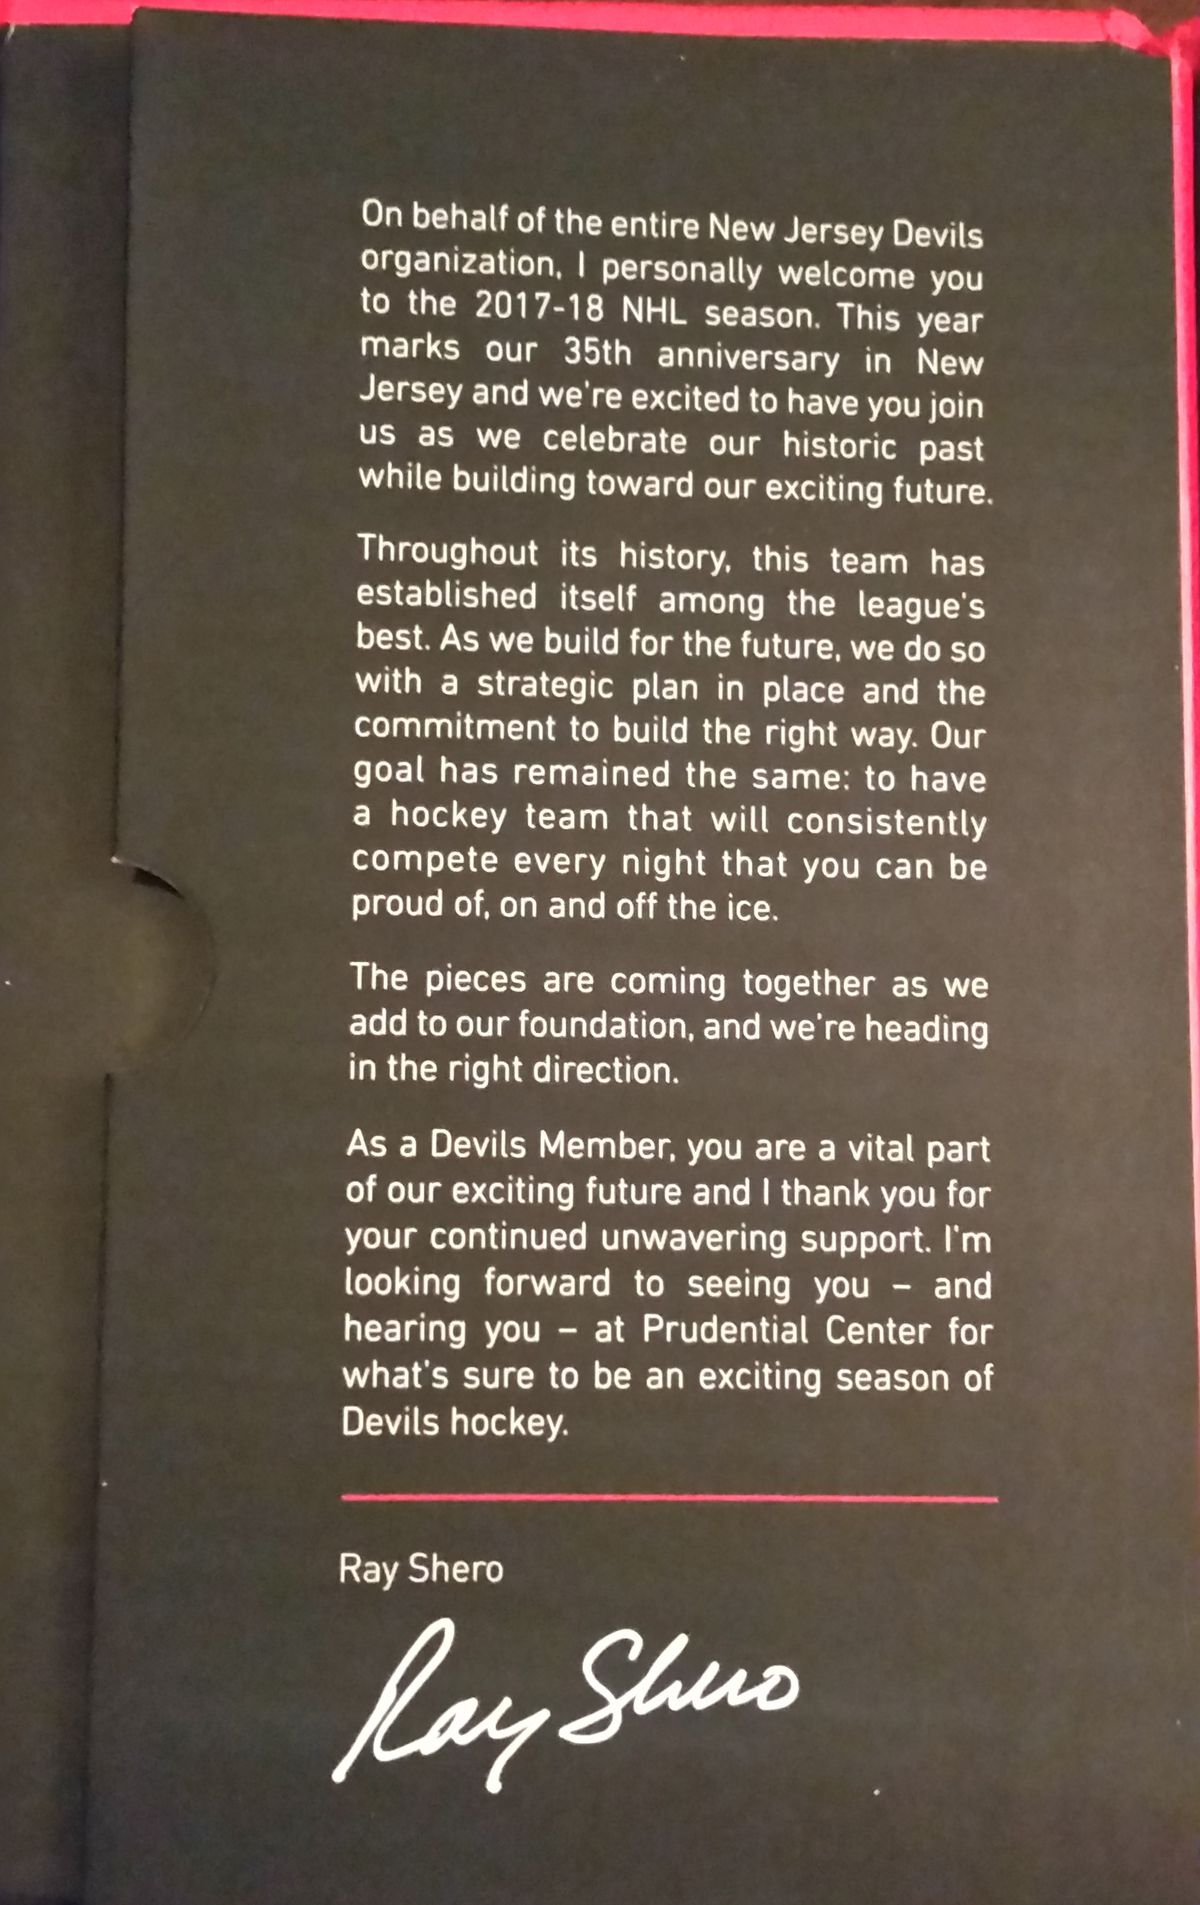 Inside the flap is a message from Devils GM Ray Shero.